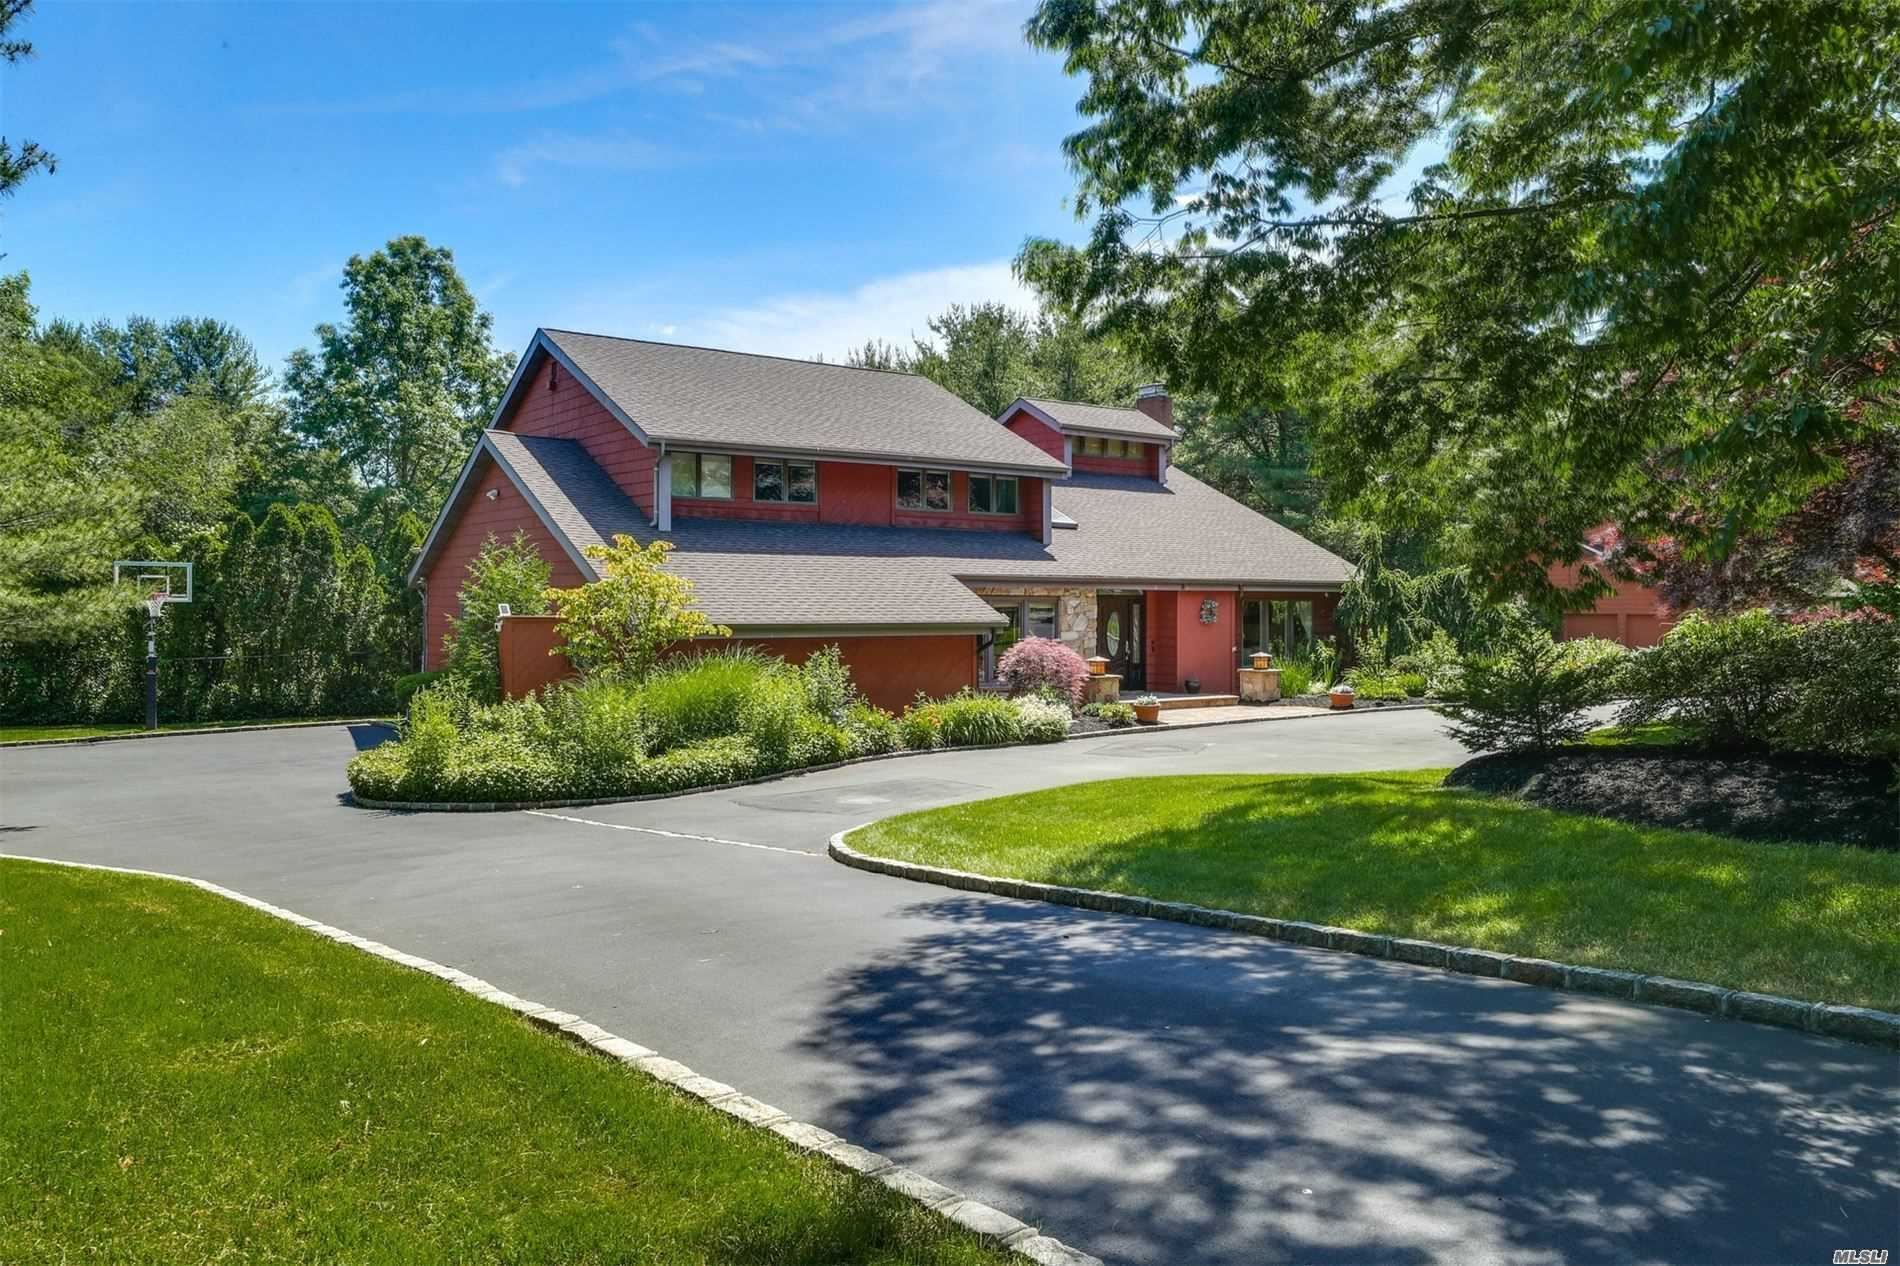 20 E. Artisan Avenue, Huntington, NY 11743 - MLS#: 3224349